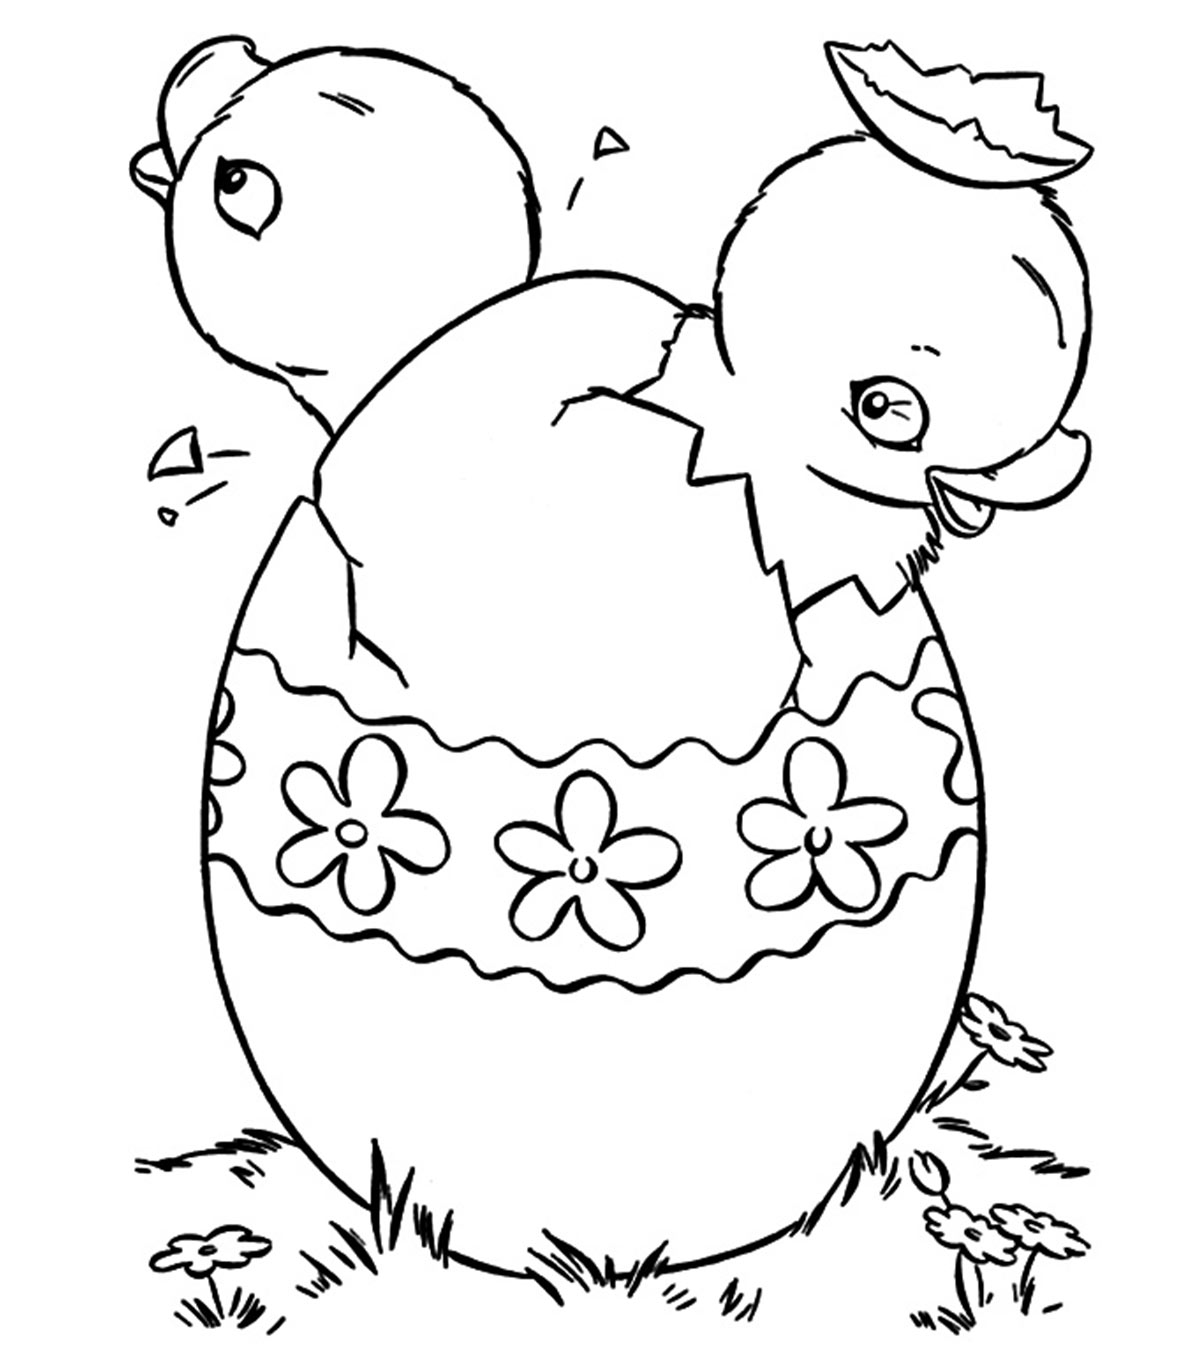 Printable Easter Coloring Pages Easter Eggs Coloring Pages To ... | 1350x1200